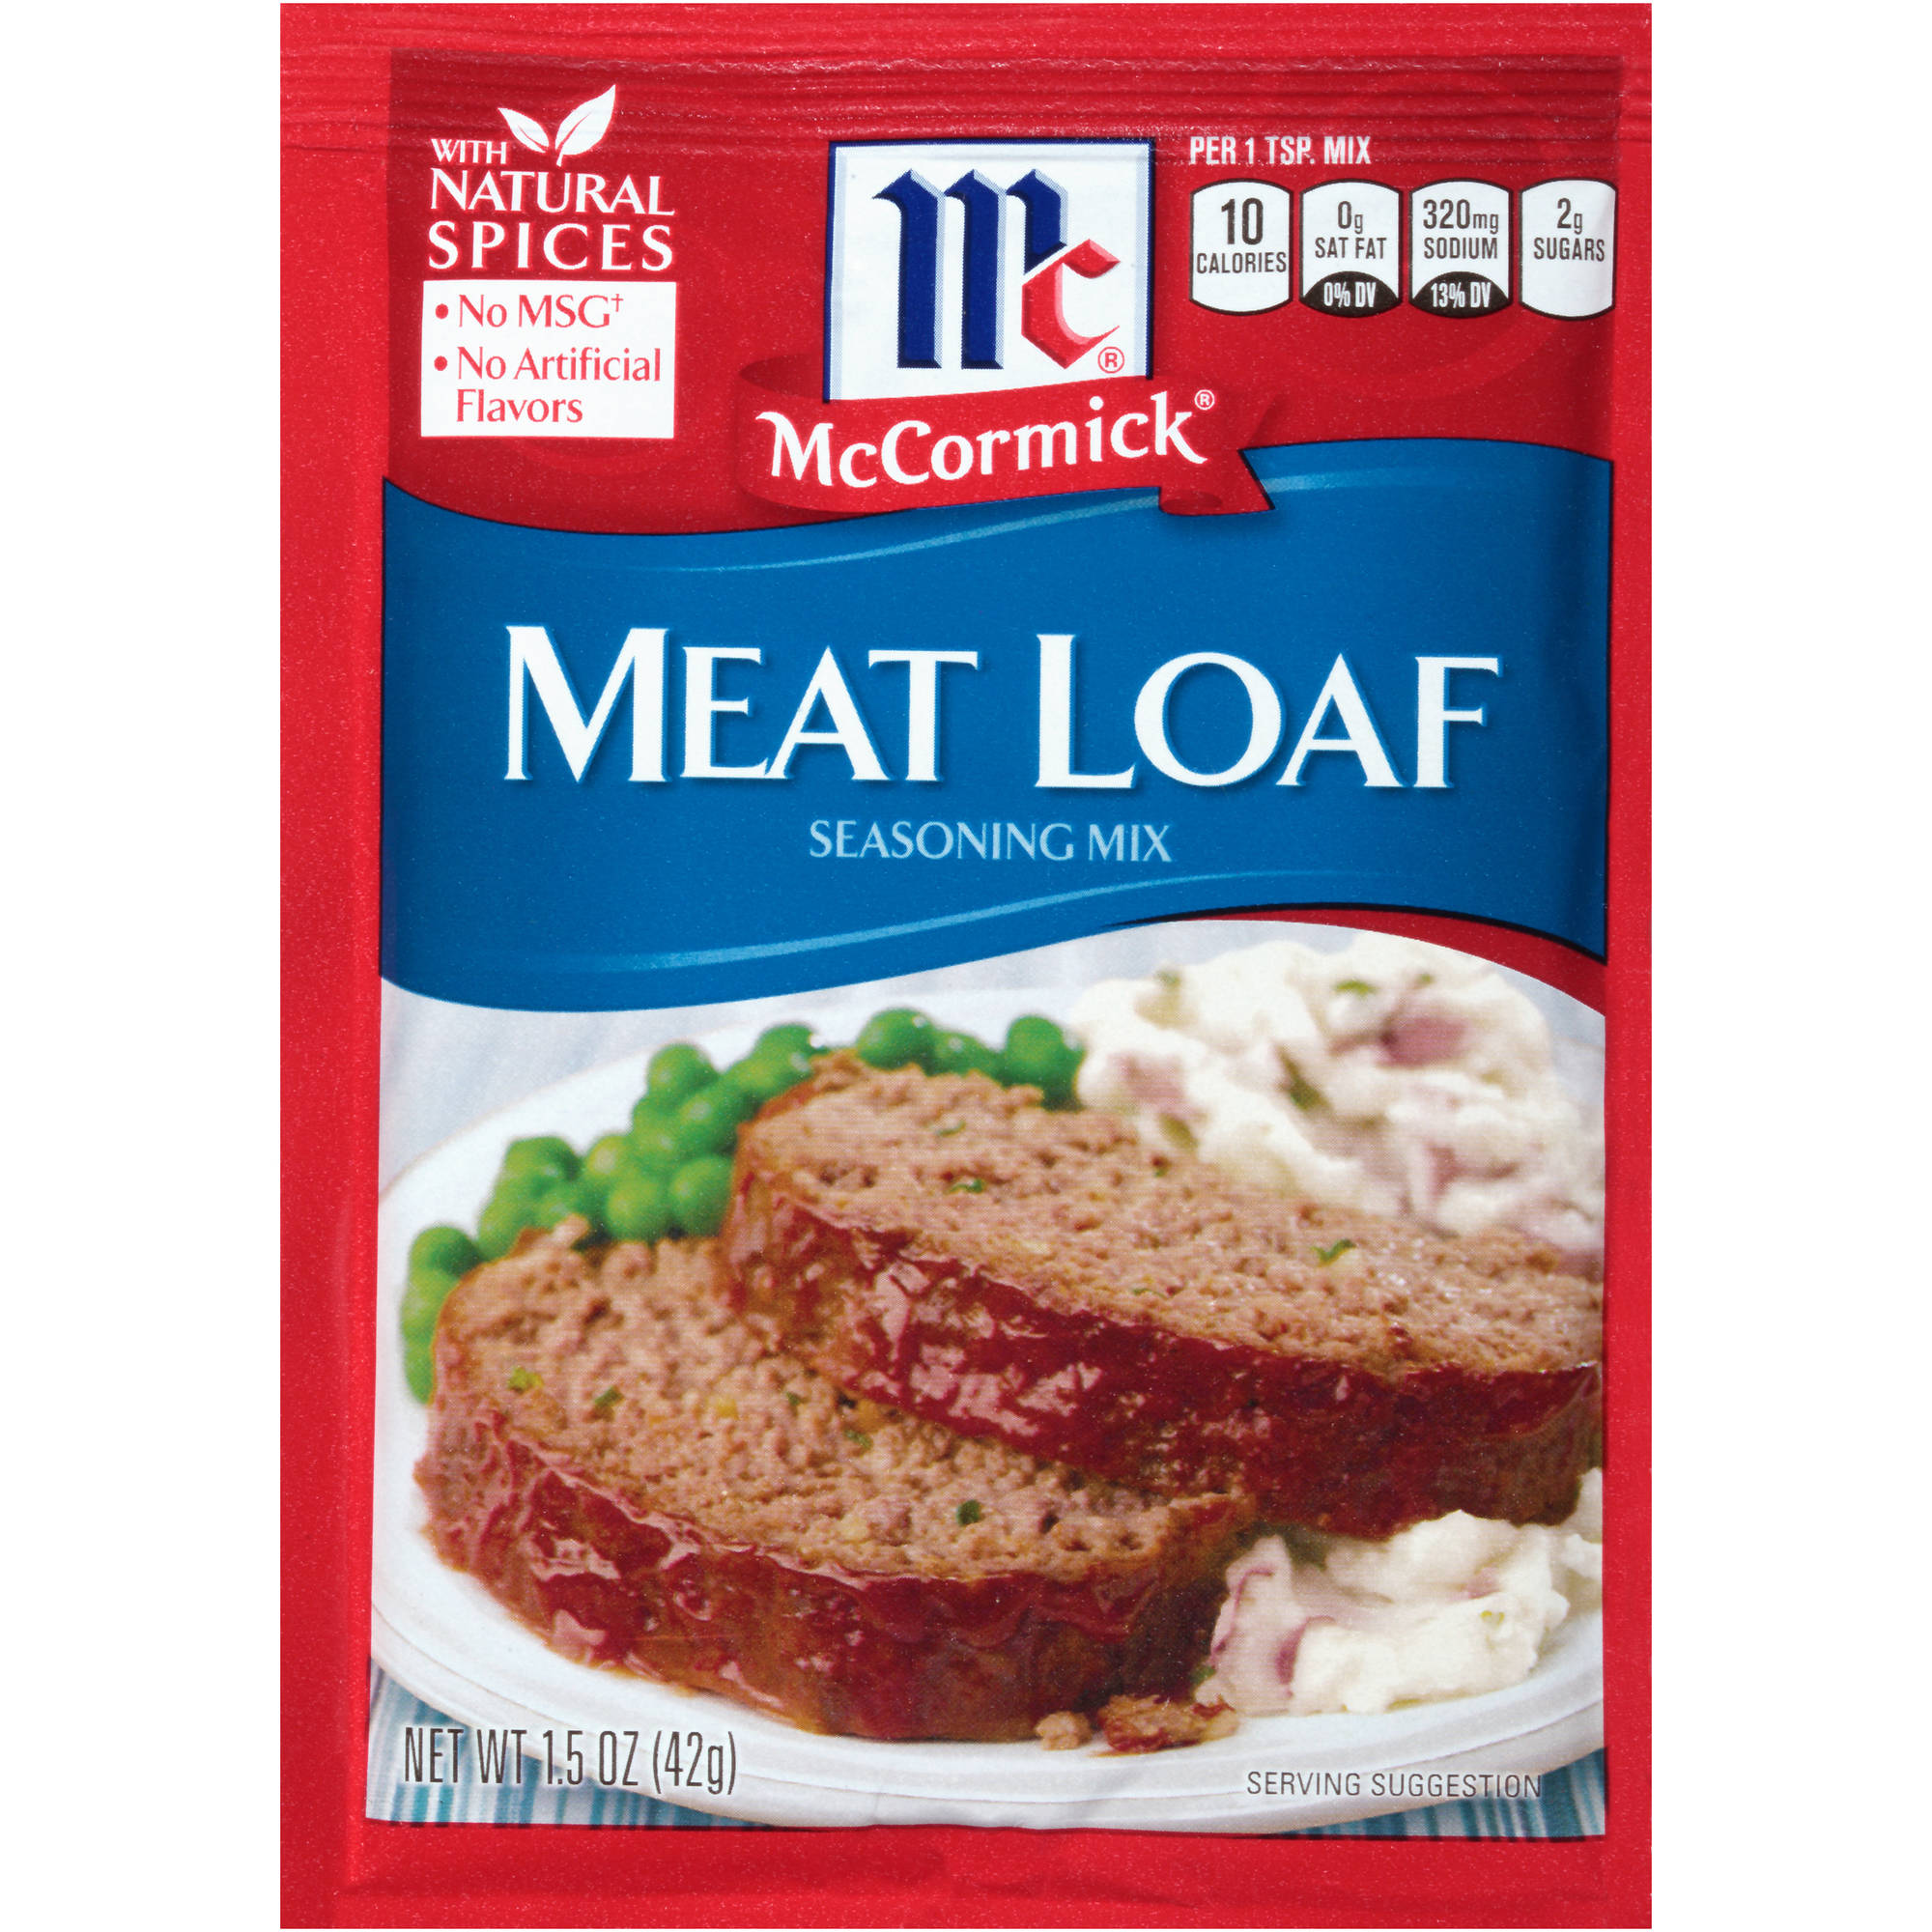 McCormick Meat Loaf Seasoning Mix, 1.5 oz